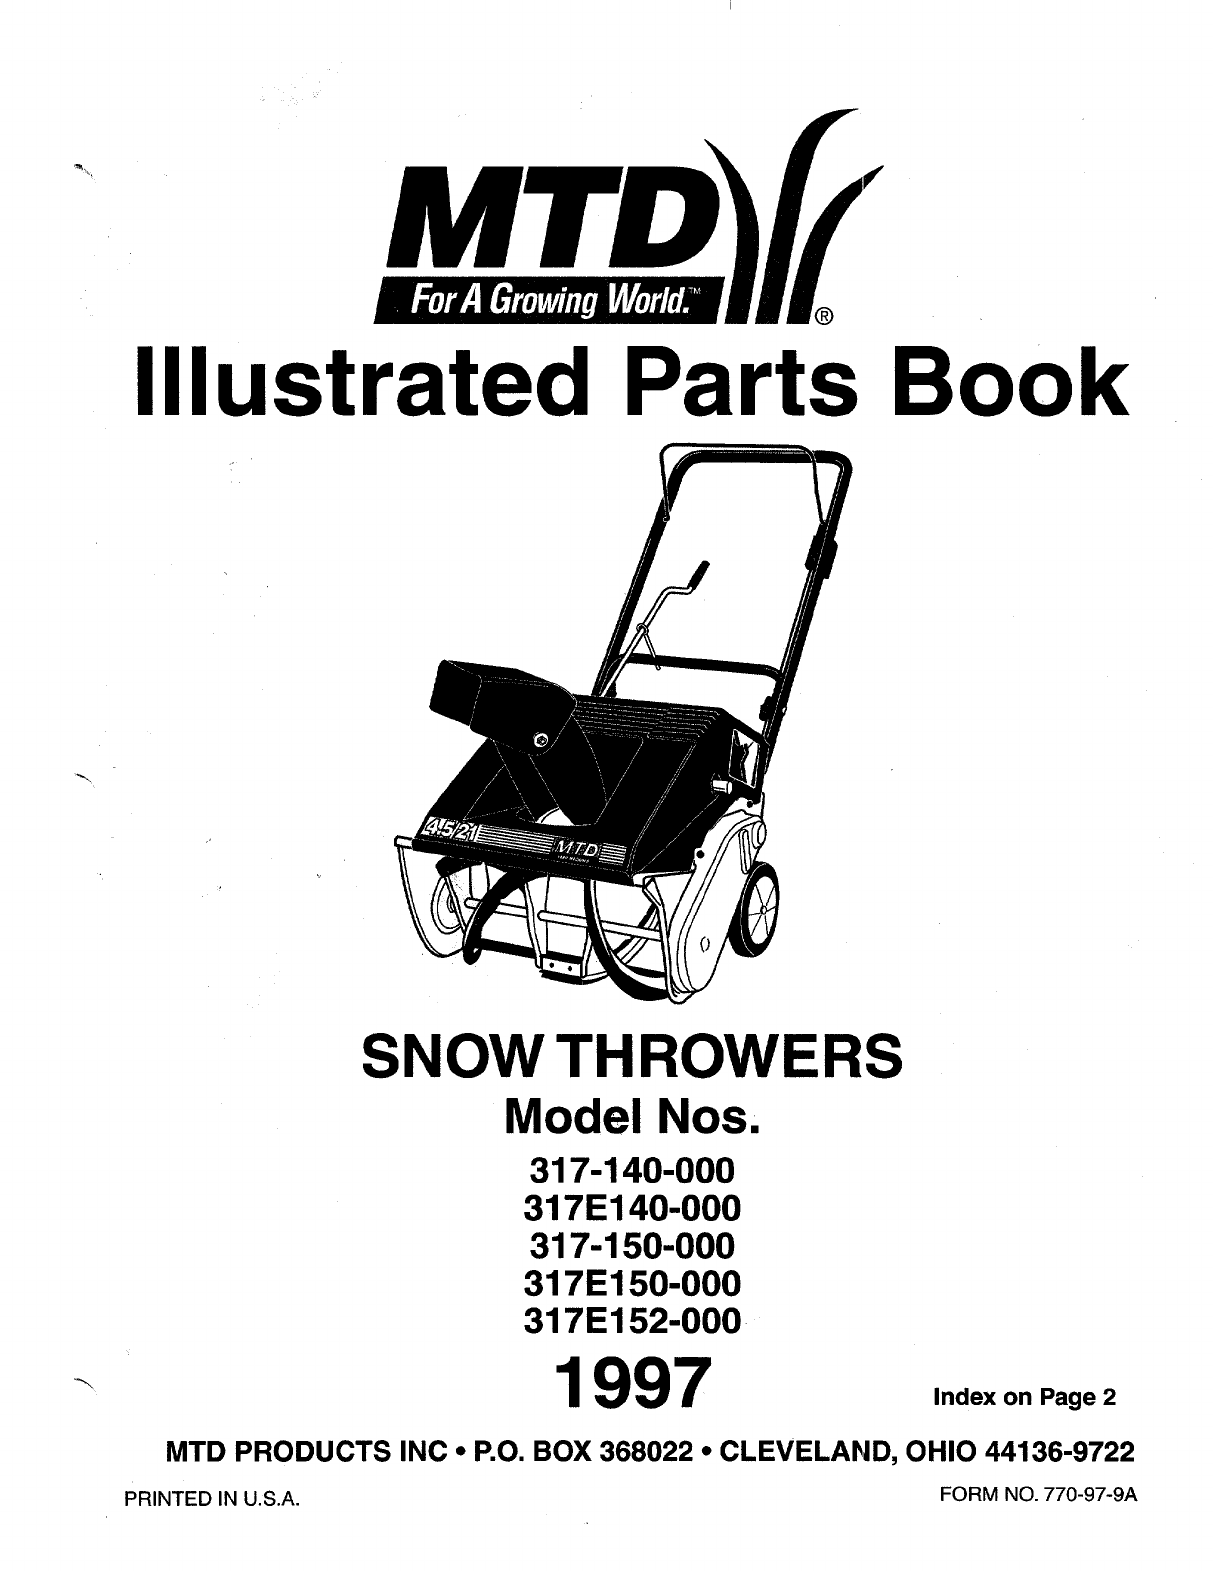 Mtd snow blower 317e150 000 user guide manualsonline mtd 317e150 000 snow blower user manual pooptronica